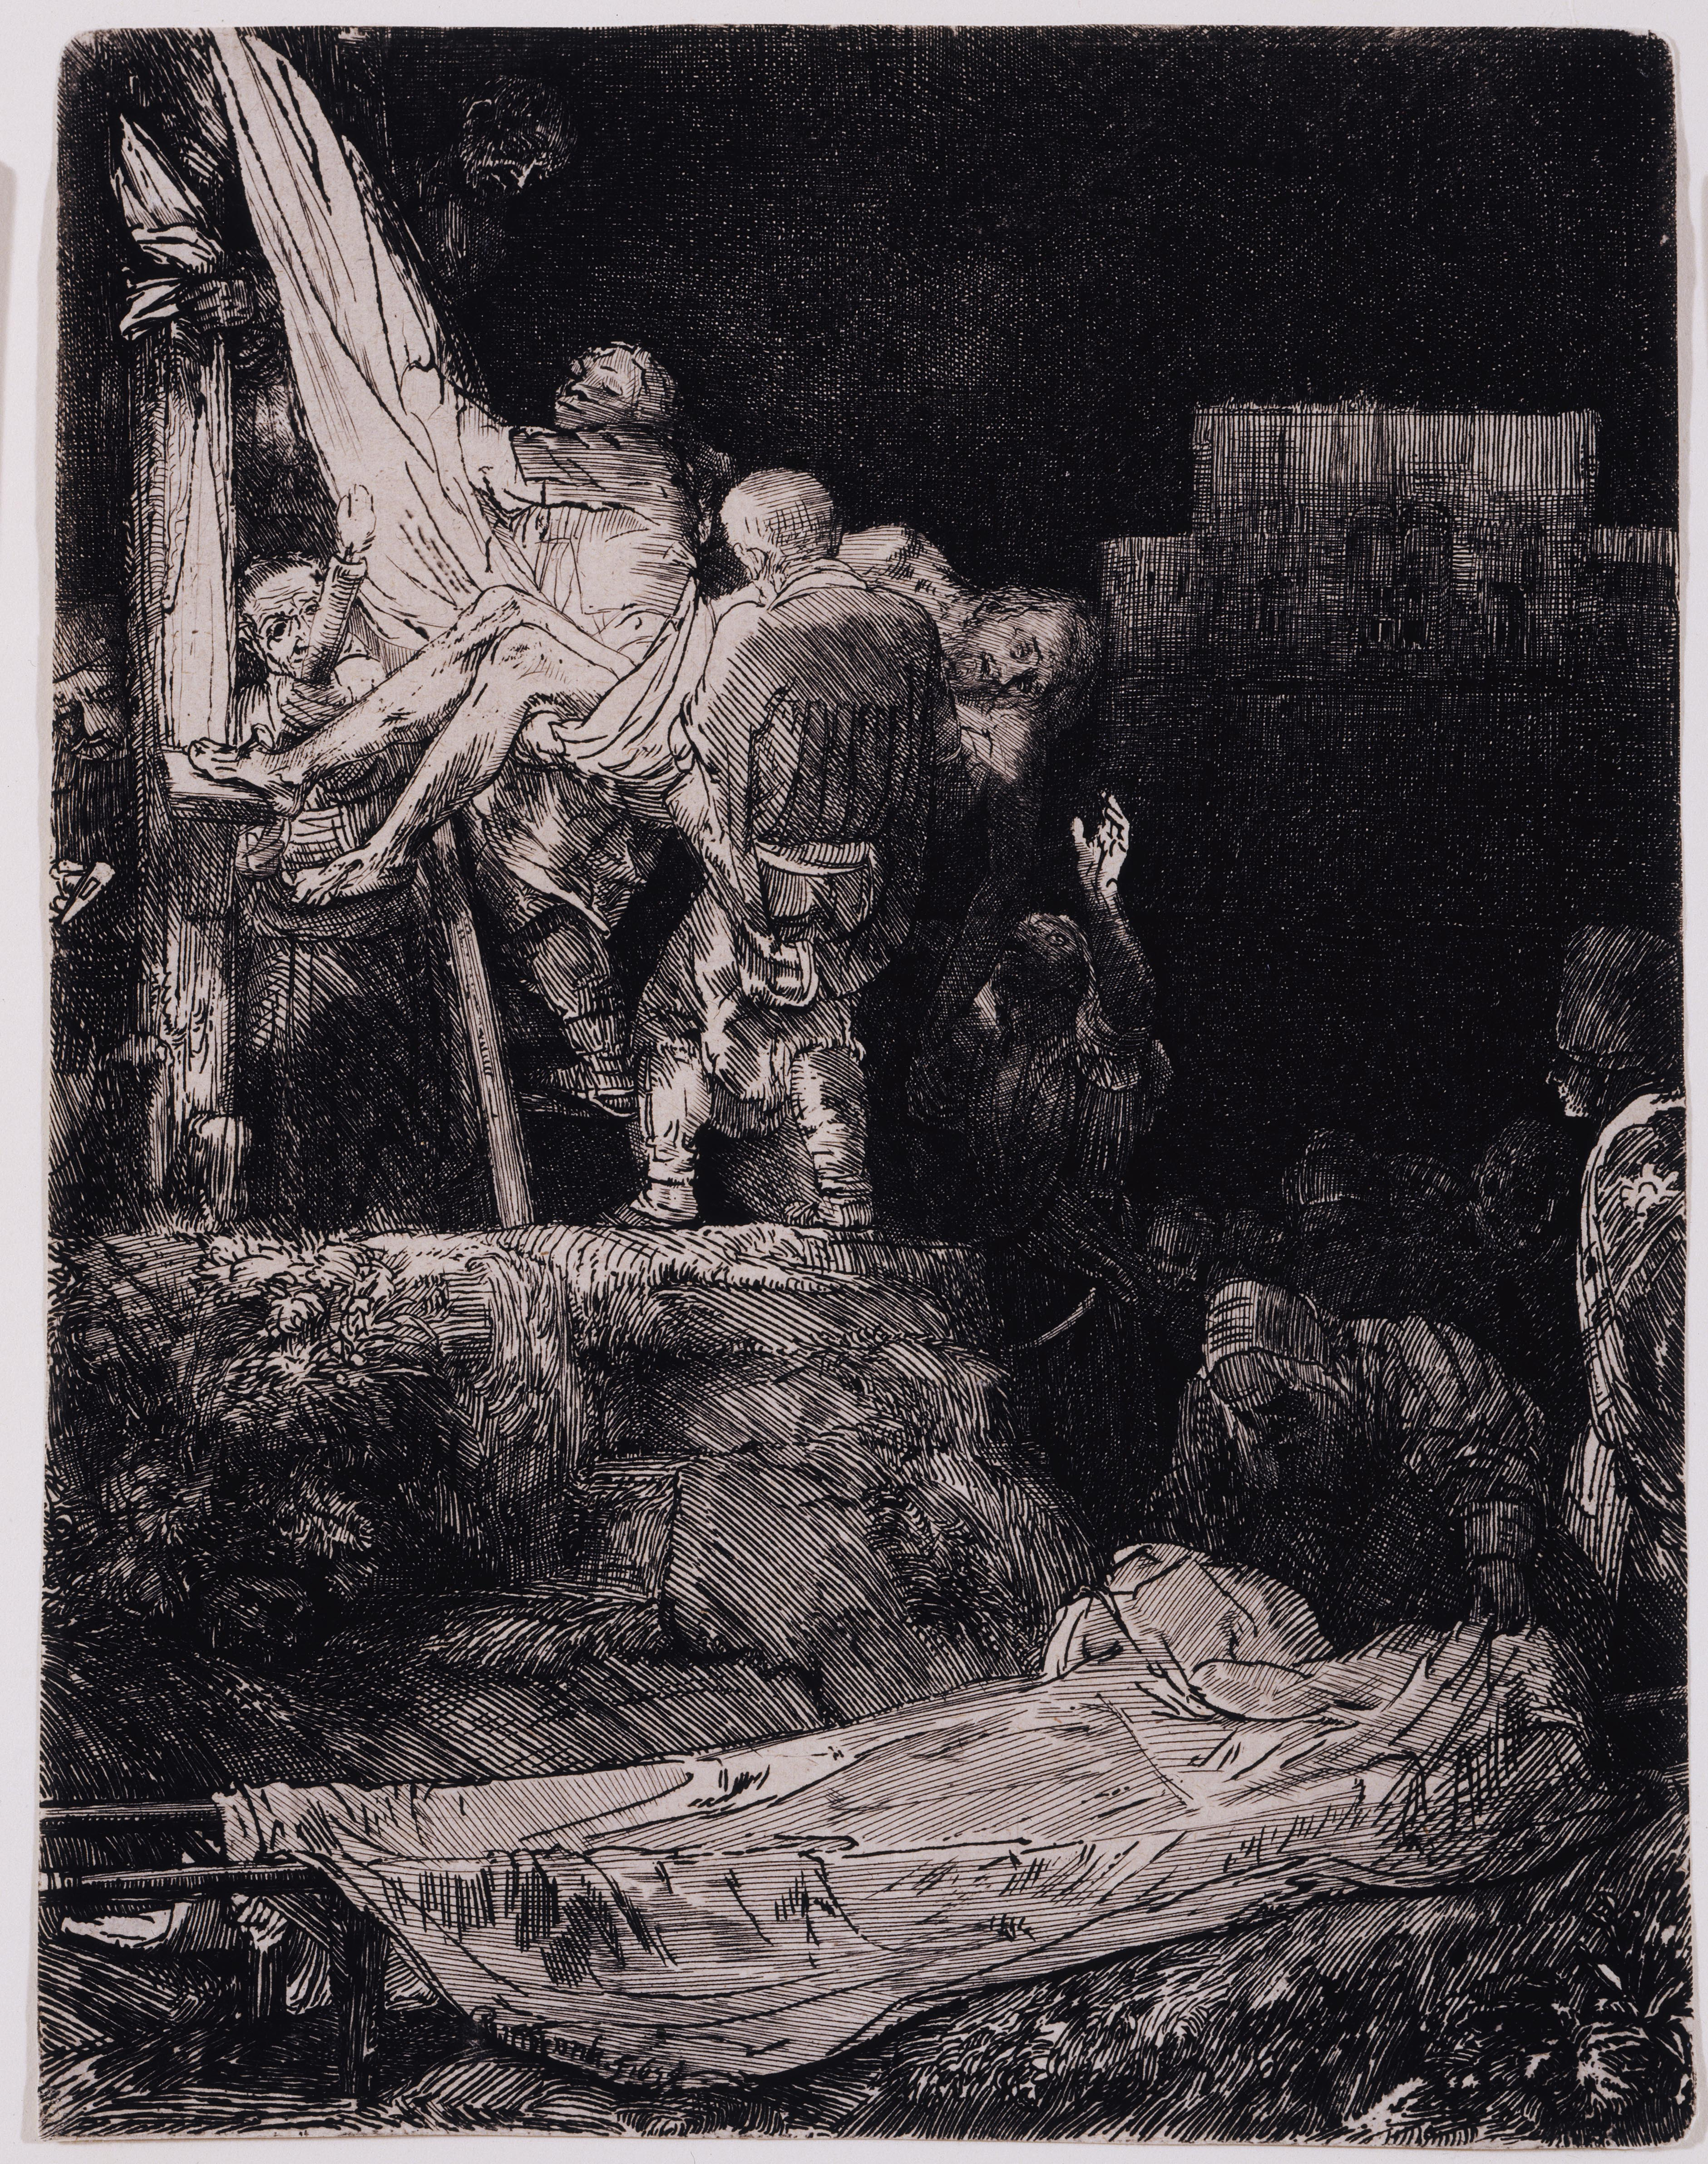 Rembrandt Harmensz. van Rijn, Descent from the Cross by Torchlight, 1654